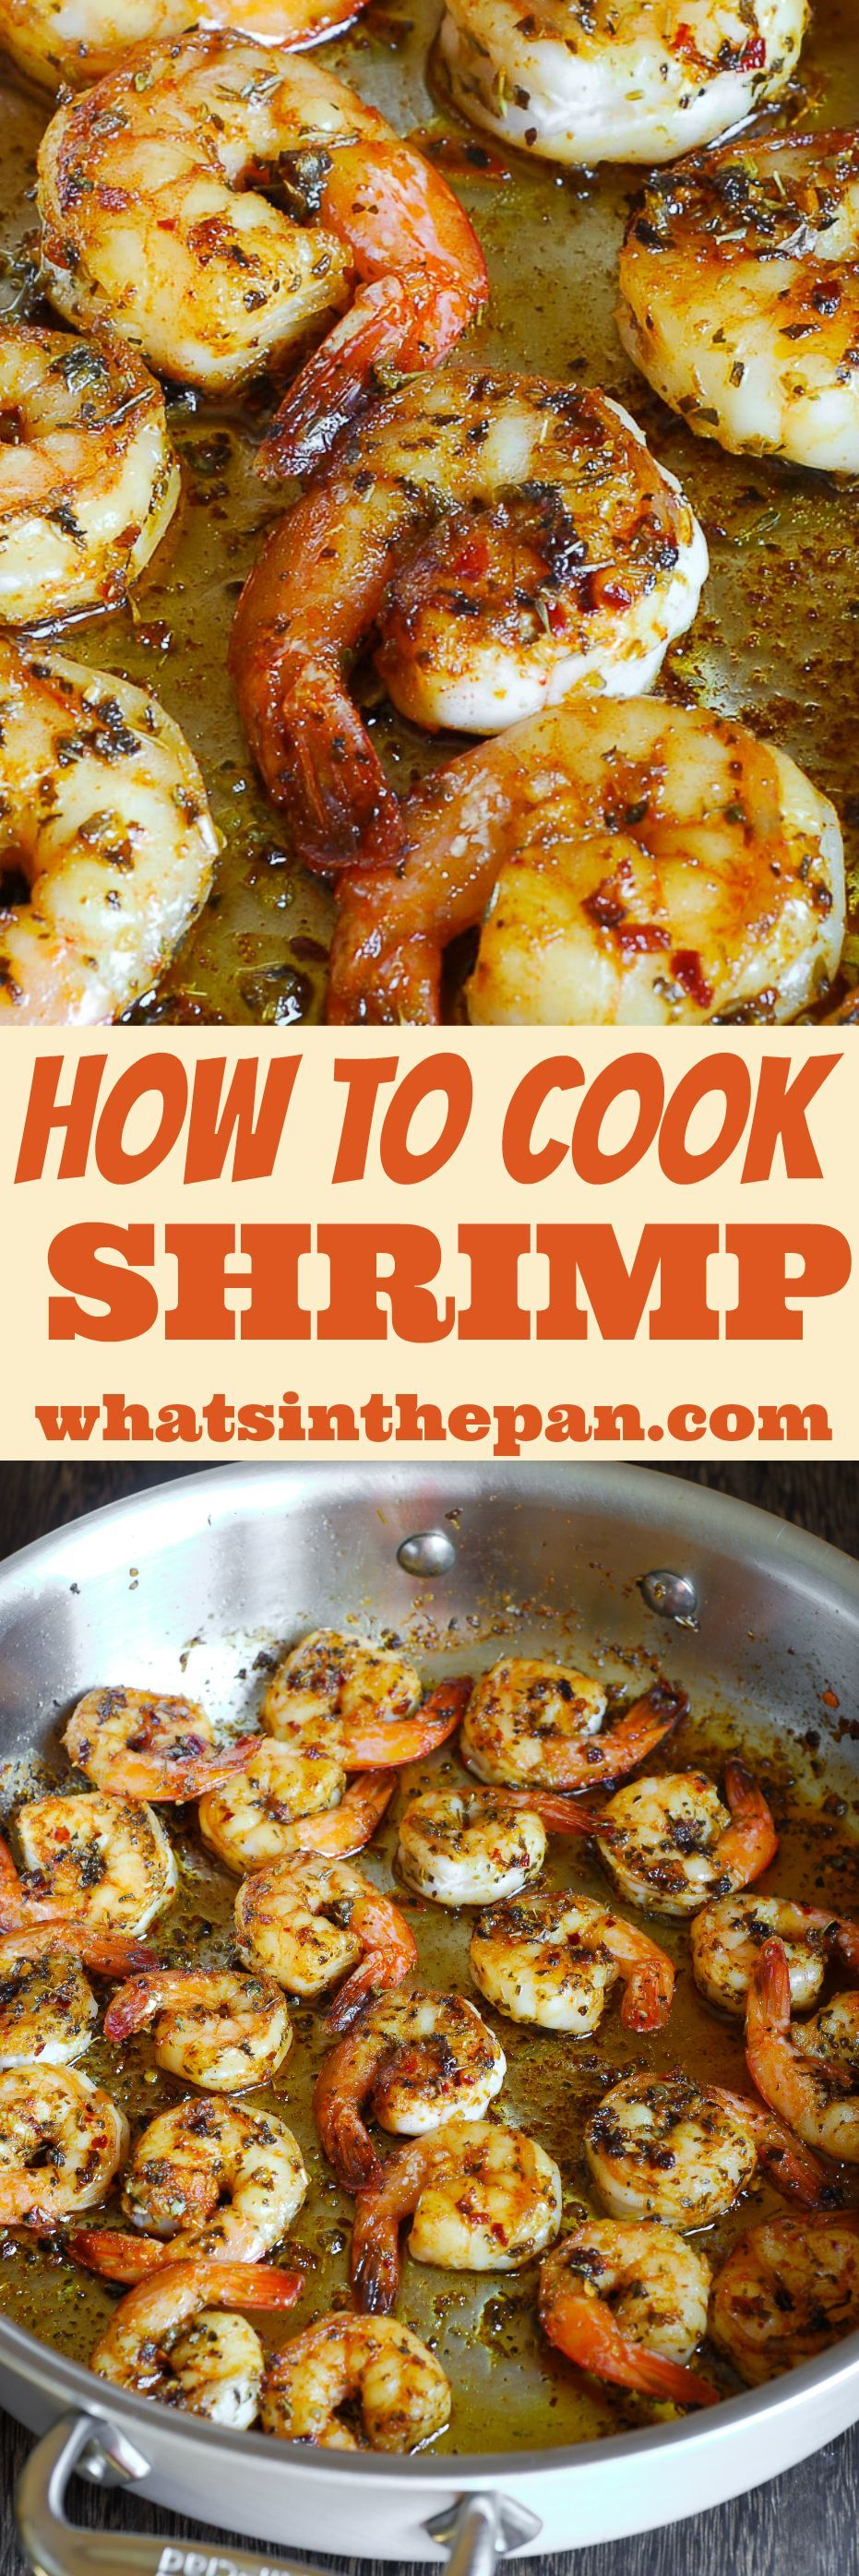 Learn how to cook shrimp on the stove with this easy to follow step by step photo instructions Great juicy shrimp cooked in the pan You wont believe how easy this can be...